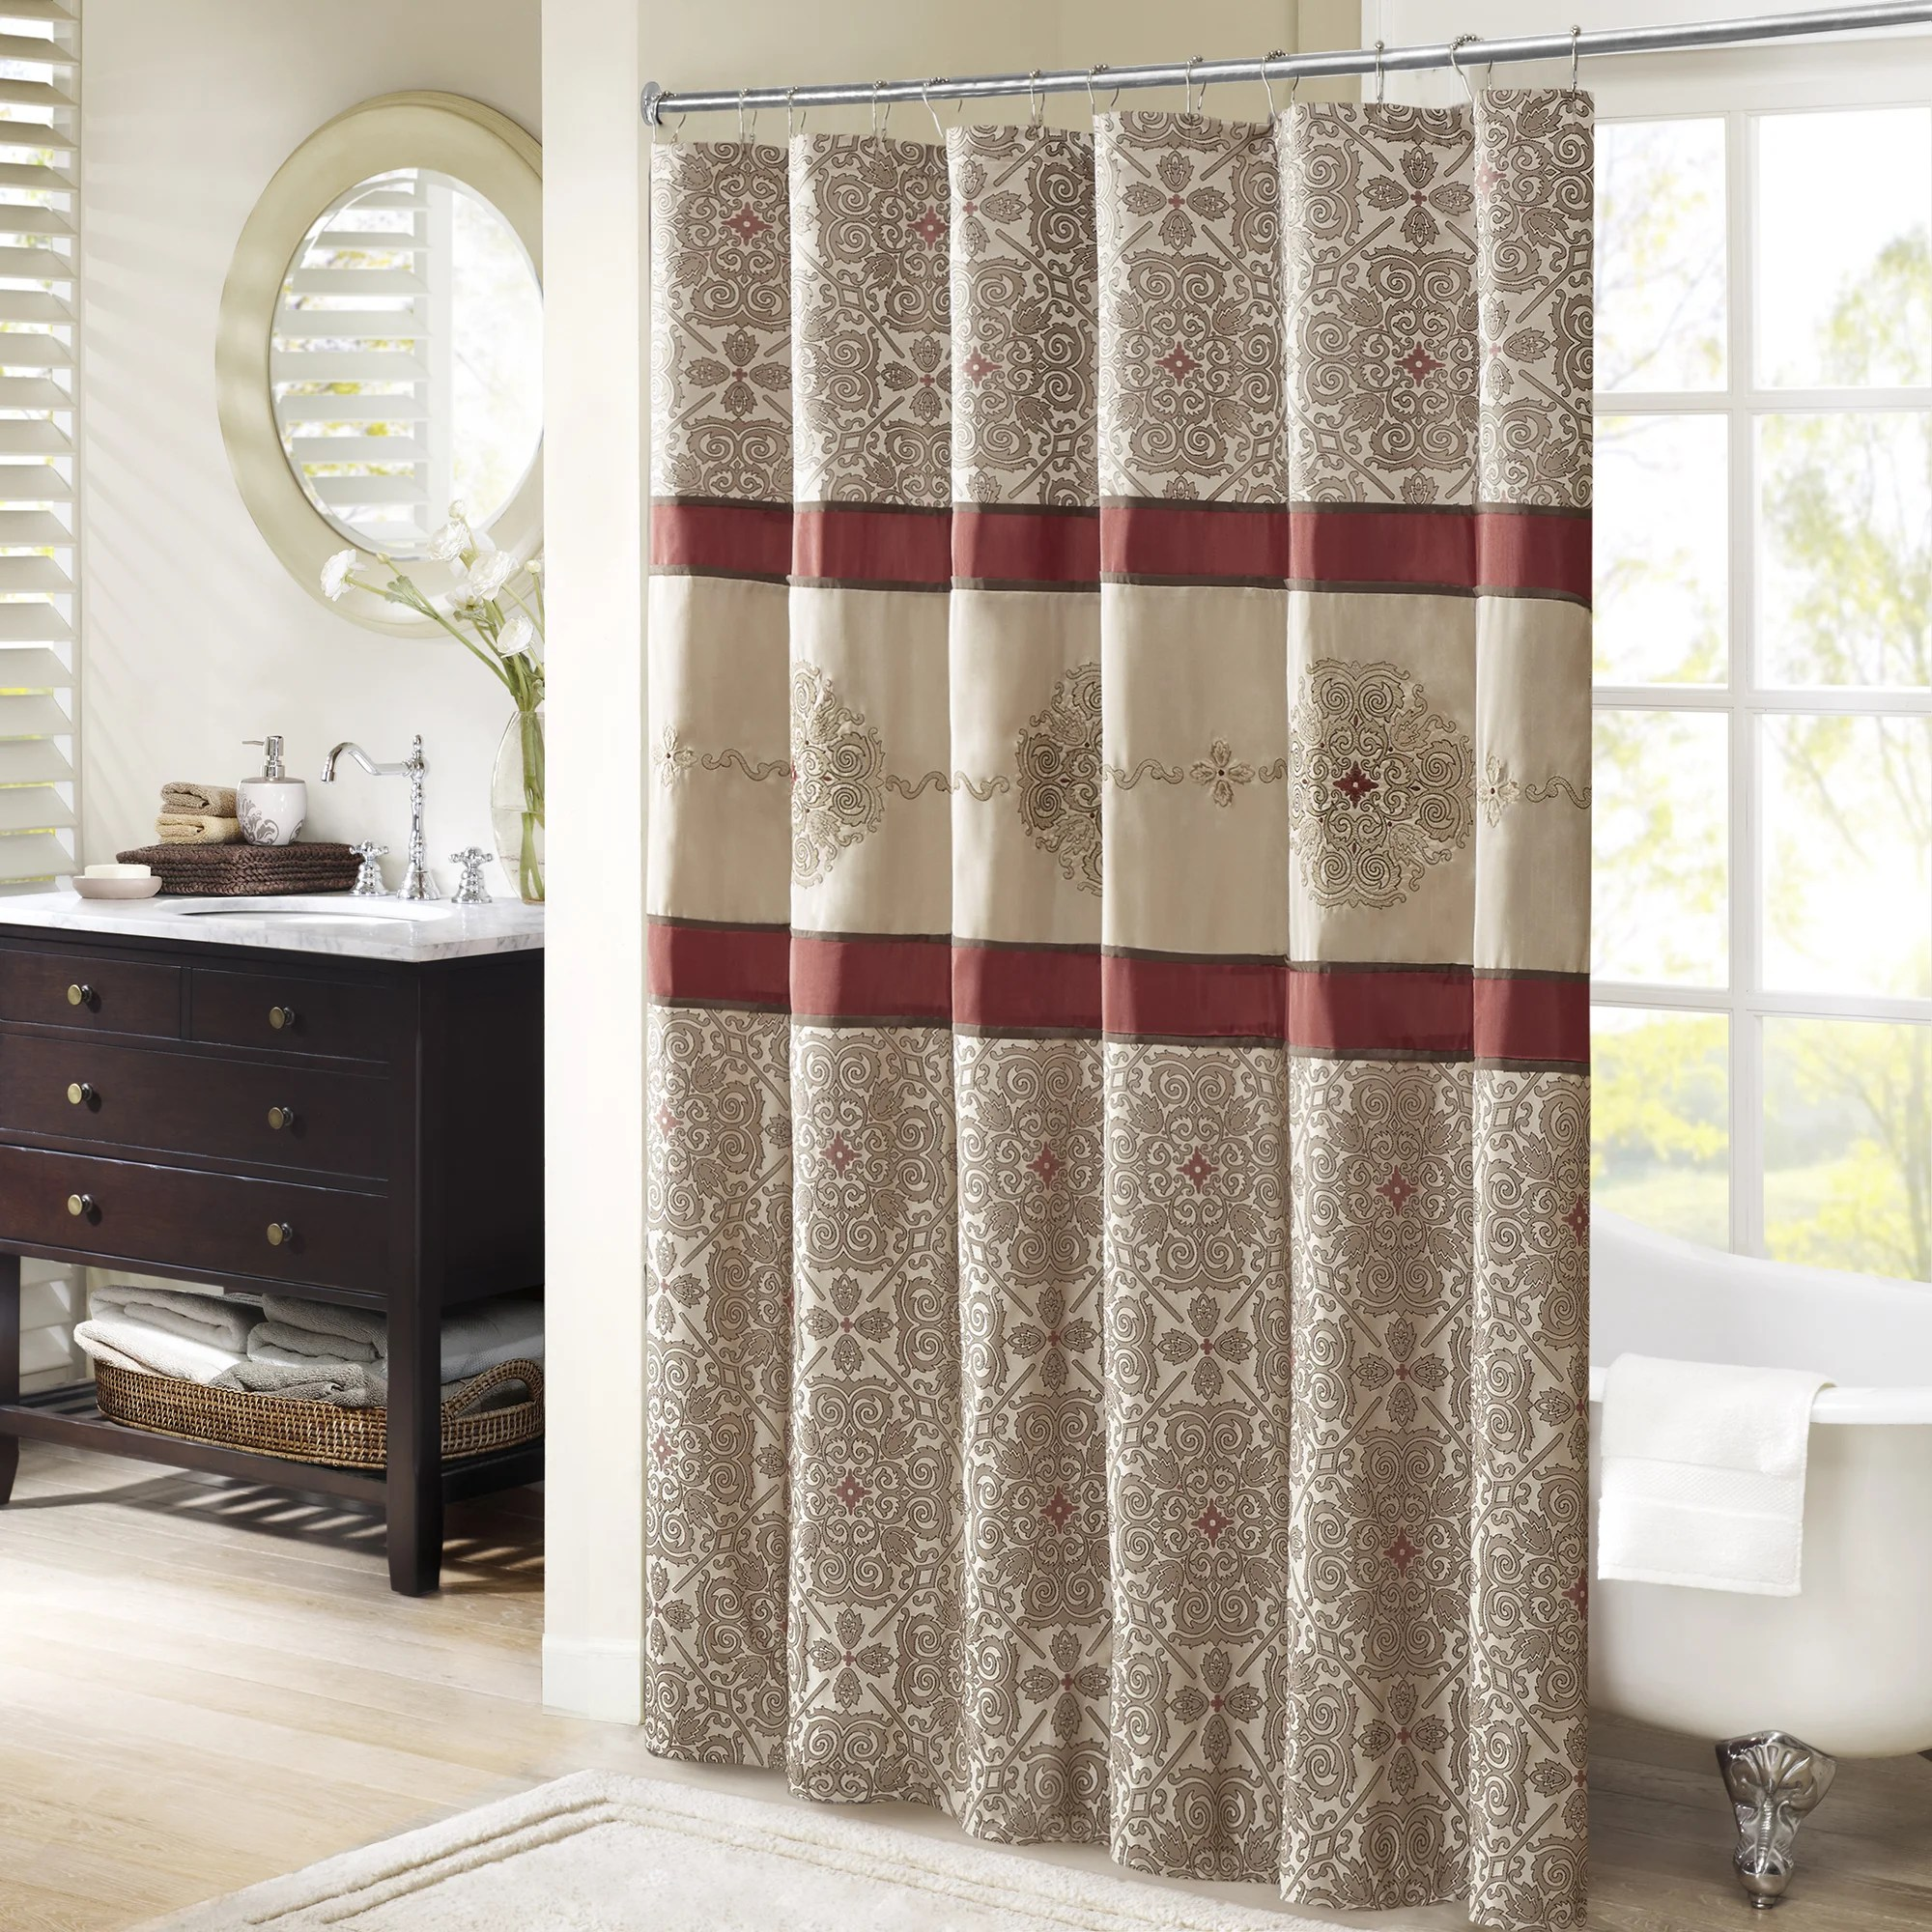 Red And Brown Shower Curtain Madison Park Blaine Red Jacquard Shower Curtain With Embroidery